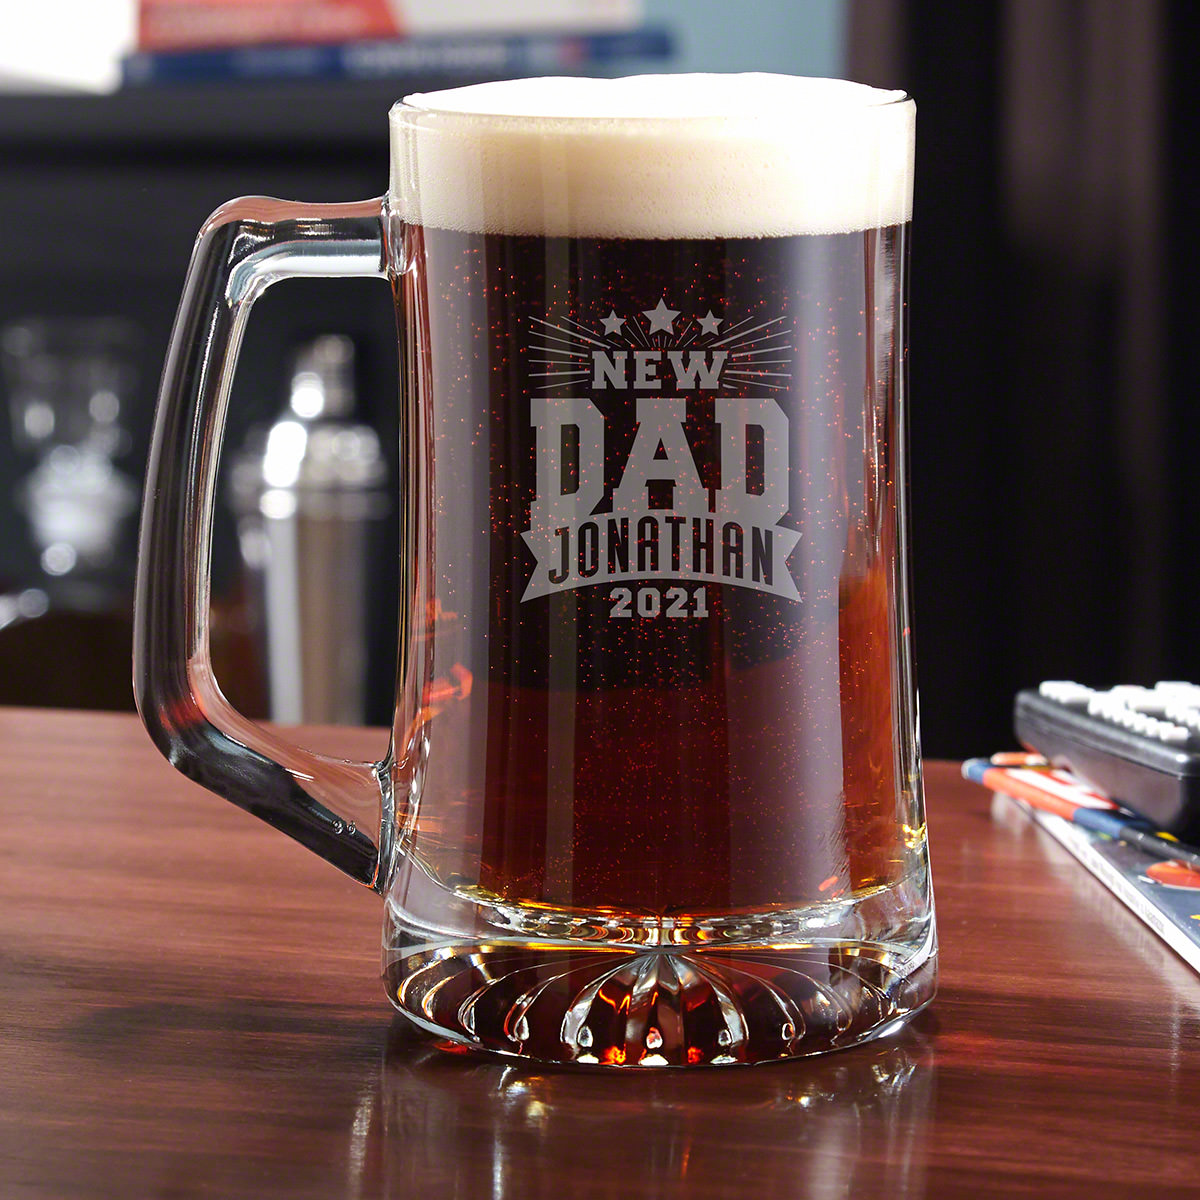 You may know someone who is becoming a father soon and could use a nice cold beer. A great gift for a new dad is a custom engraved beer mug! He will love that it has his name and the year his first child was born as a unique keepsake that will help him ge #mug